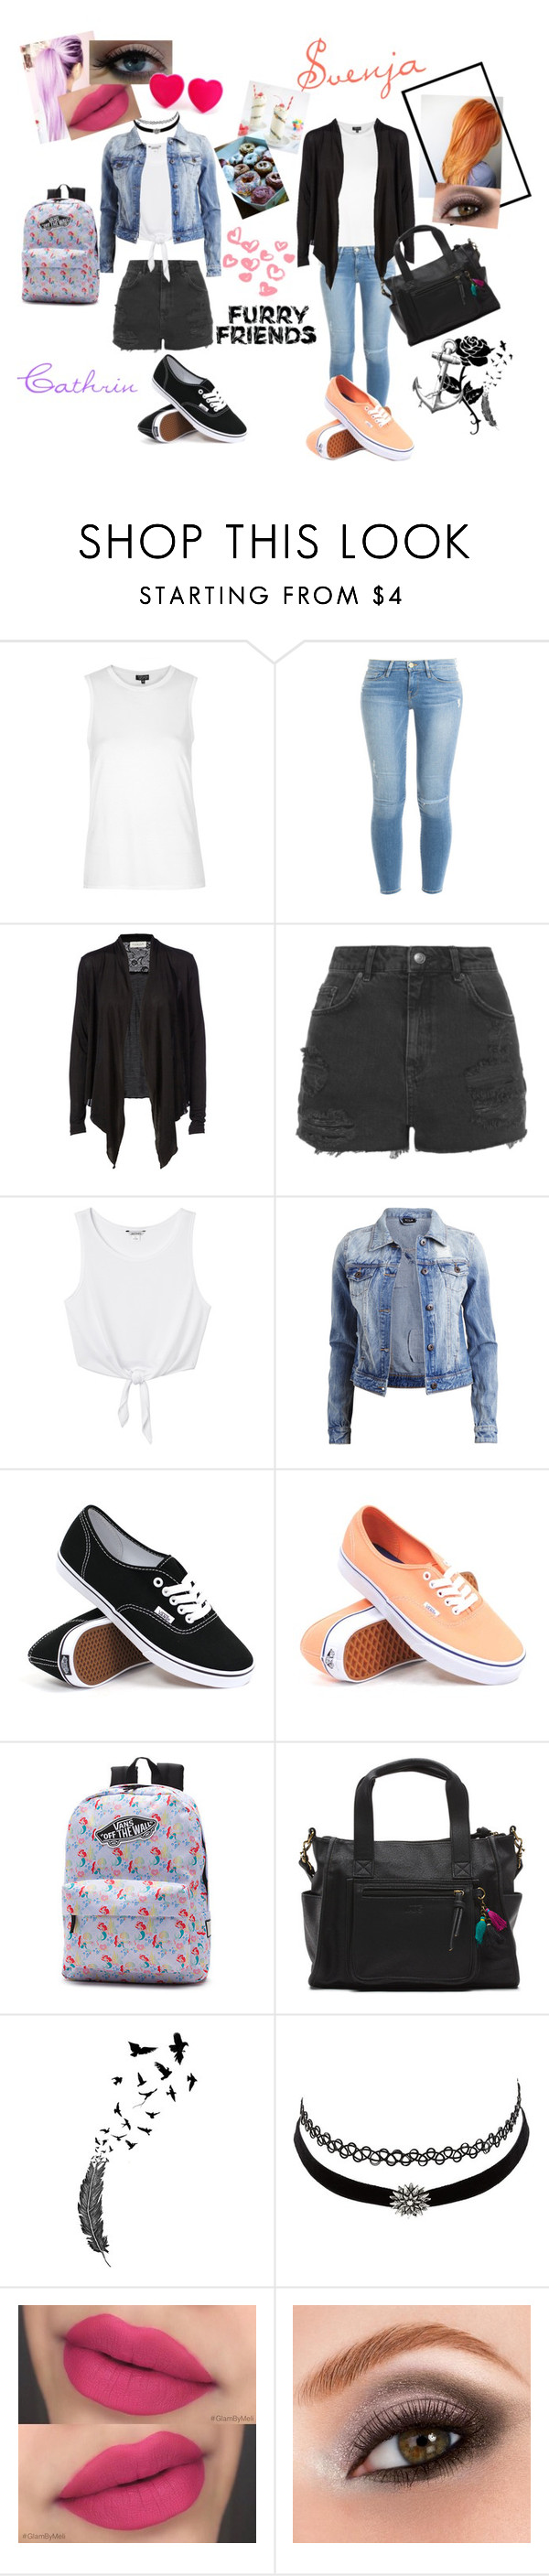 """""""Bestie."""" by caca-irwin ❤ liked on Polyvore featuring beauty, Topshop, Frame Denim, Rosemunde, Monki, VILA, Vans, Charlotte Russe, Gypsy and Avon"""